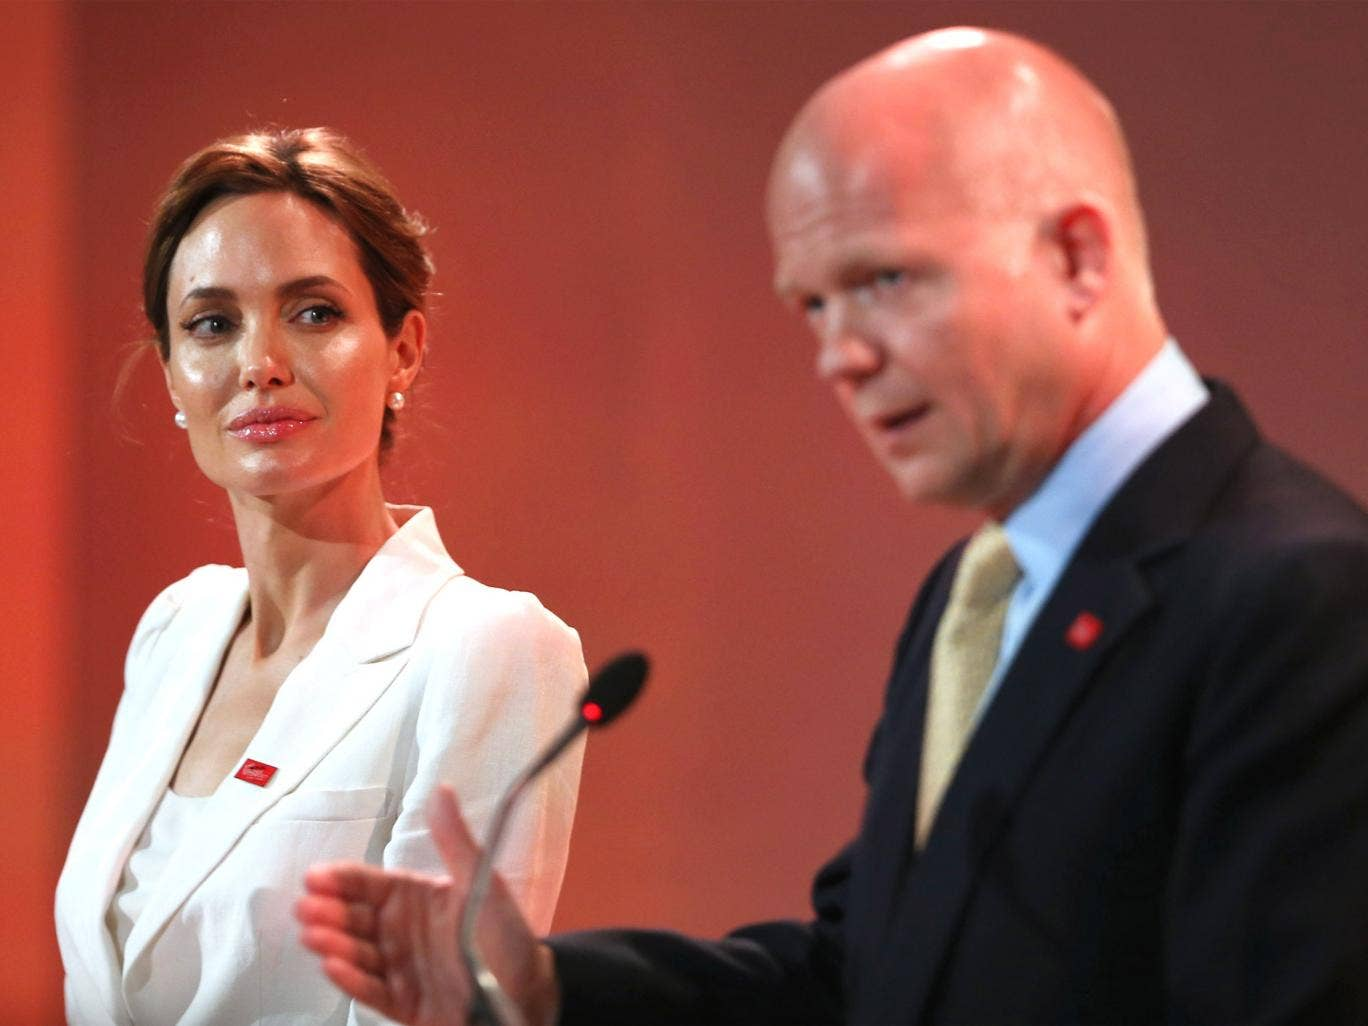 Angelina Jolie and William Hague speak at the Global Summit to End Sexual Violence in Conflict, in London